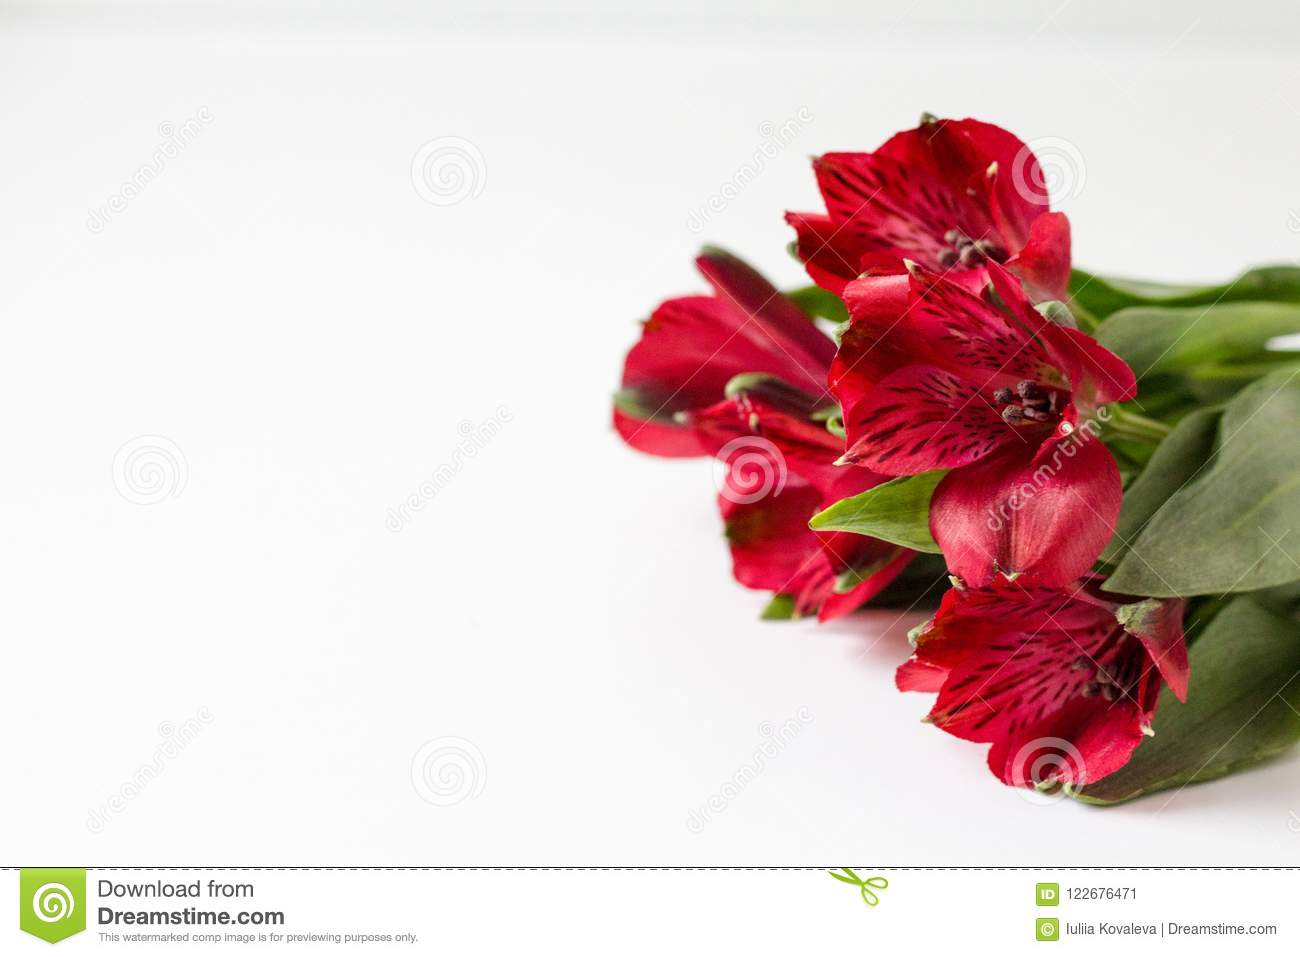 Red alstroemeria on a white background